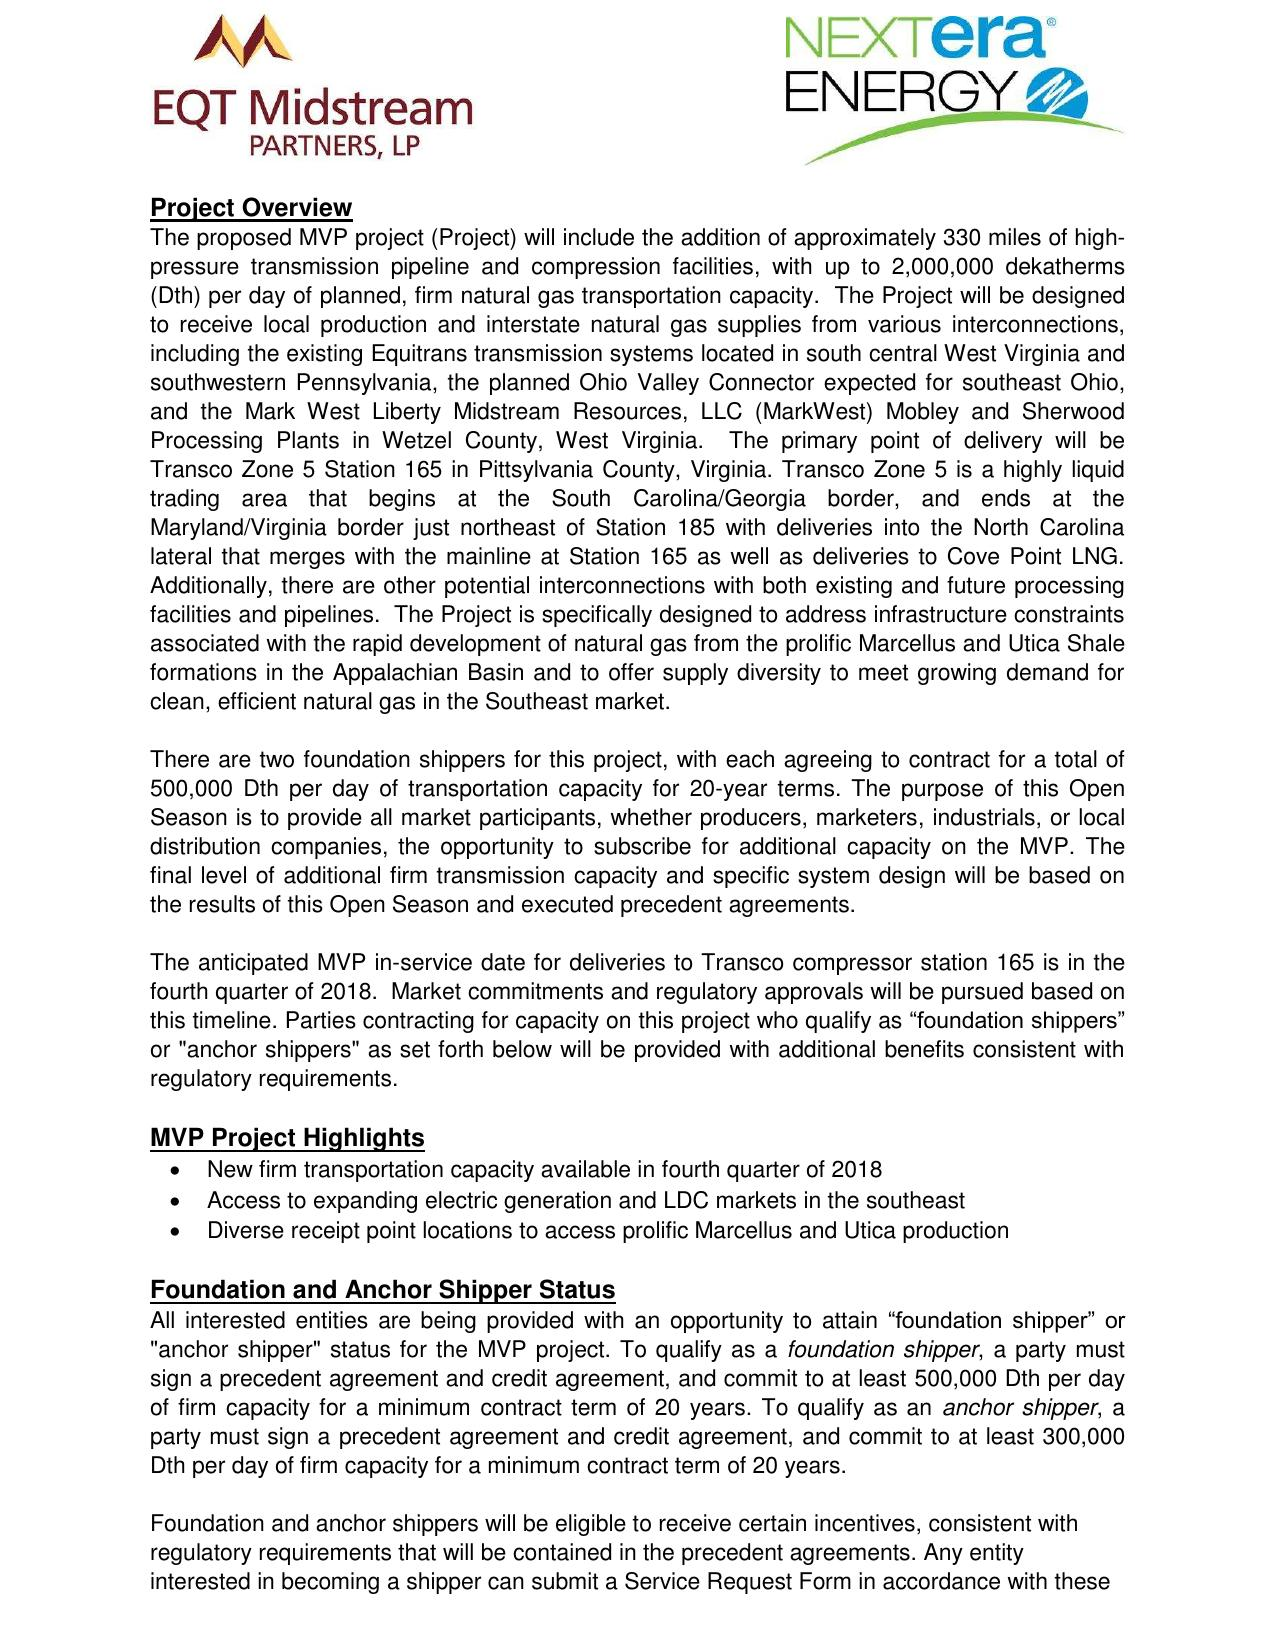 1275x1650 Project Overview, in Mountain Valley Pipeline Non-binding Open Season, by EQT Midstream Partners, LLP and NextEra Energy, for SpectraBusters.org, 12 June 2014